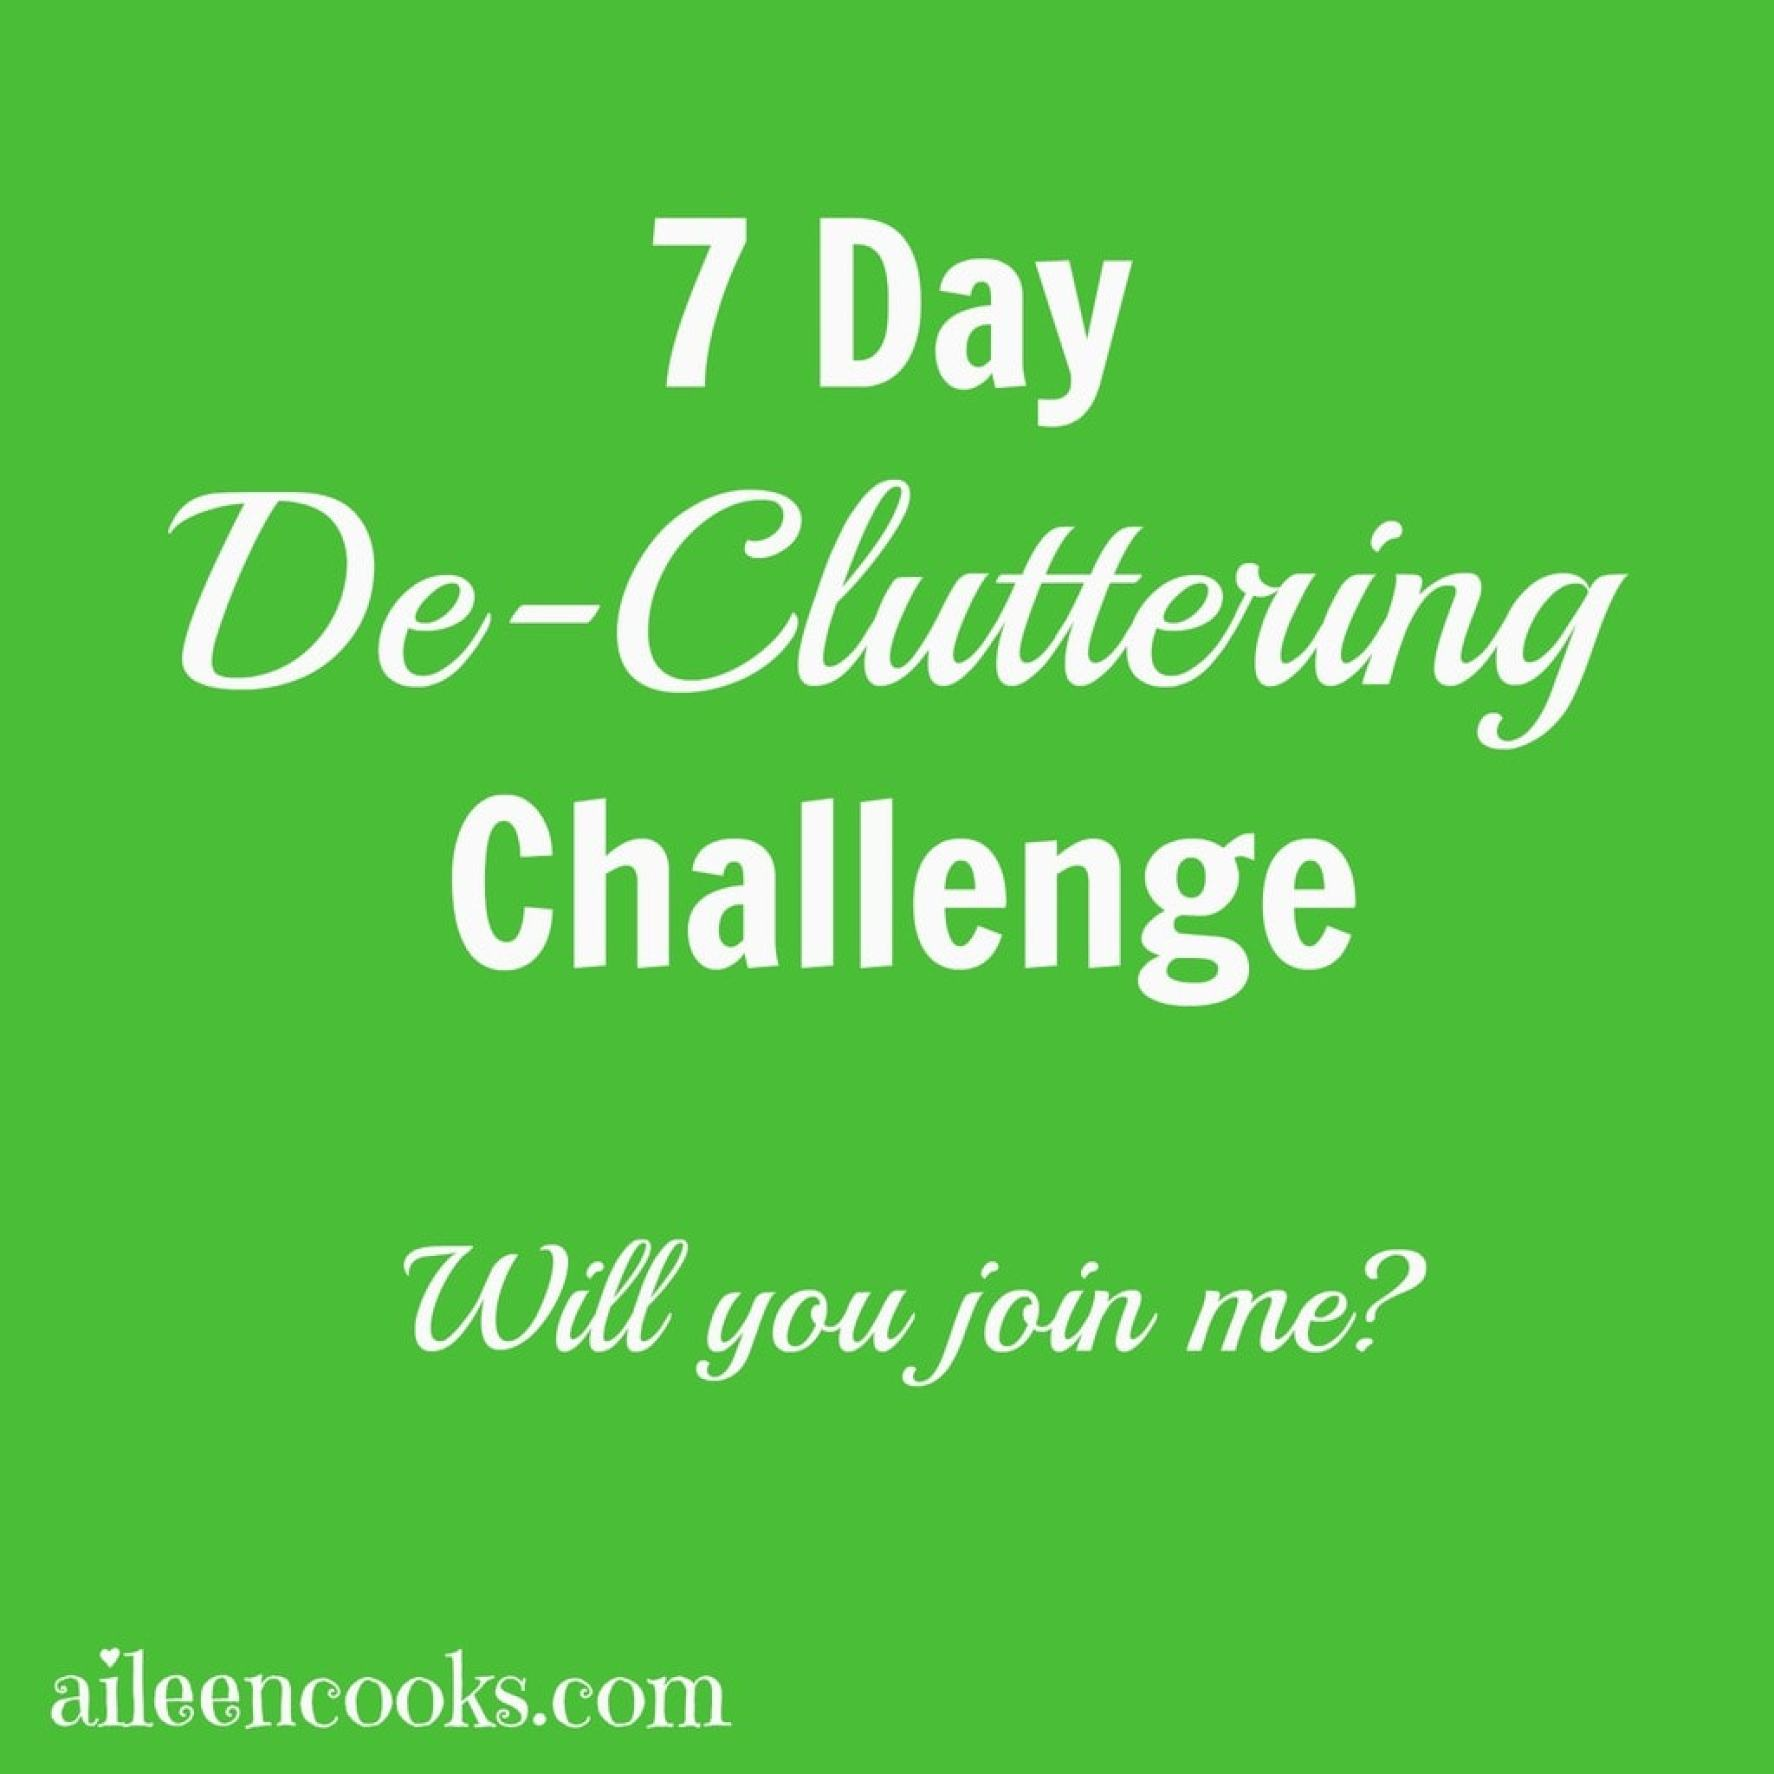 7 Day De-Cluttering Challenge Will you join me. Let's Do some spring cleaning together! https://aileencooks.com